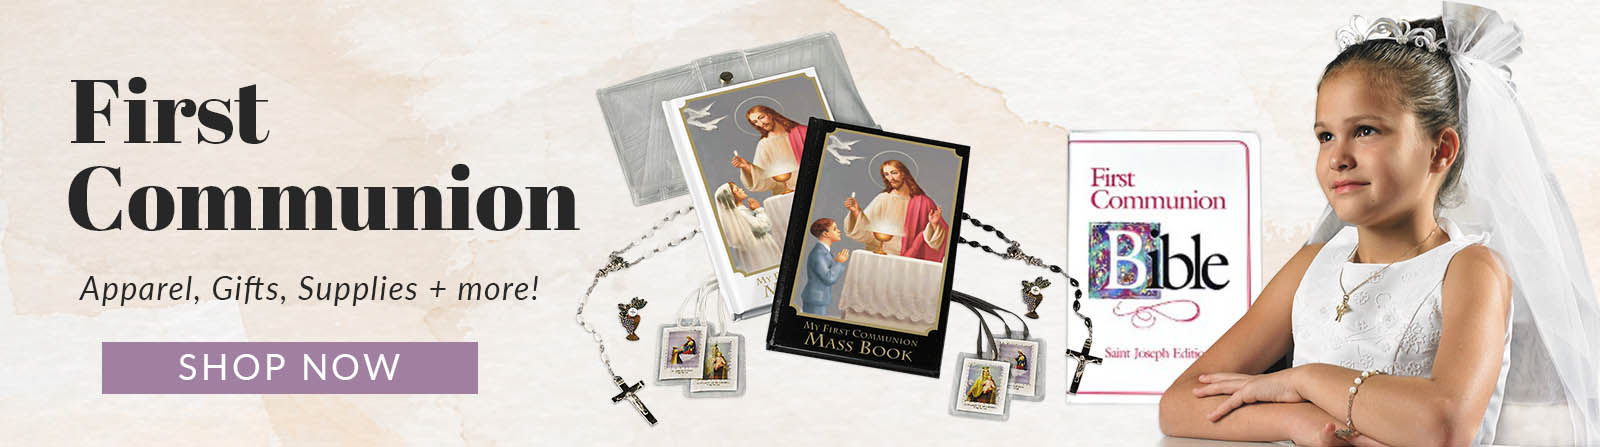 First Communion - Apparel, Gifts, Supplies and More! Shop Now